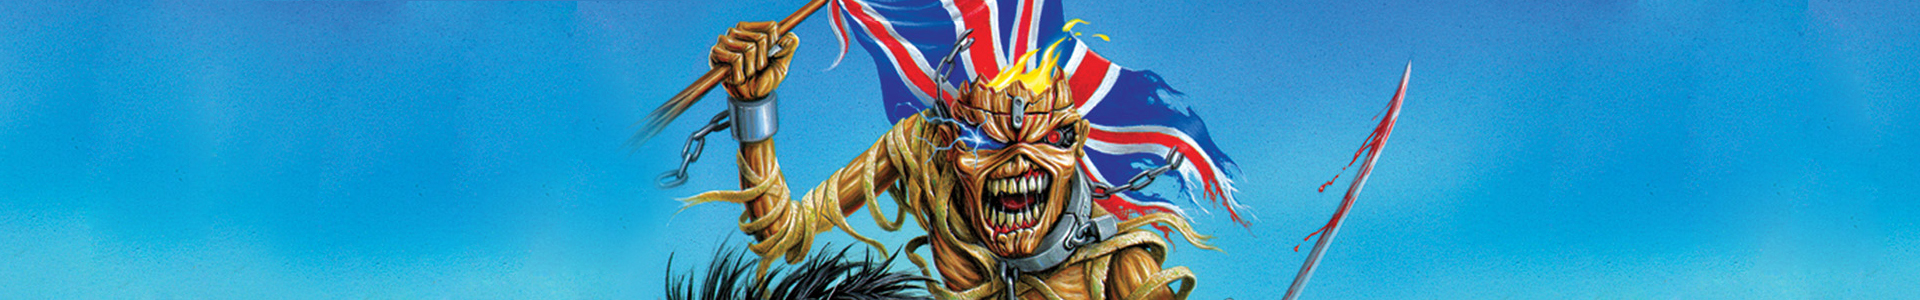 Maiden England Tour - 2014